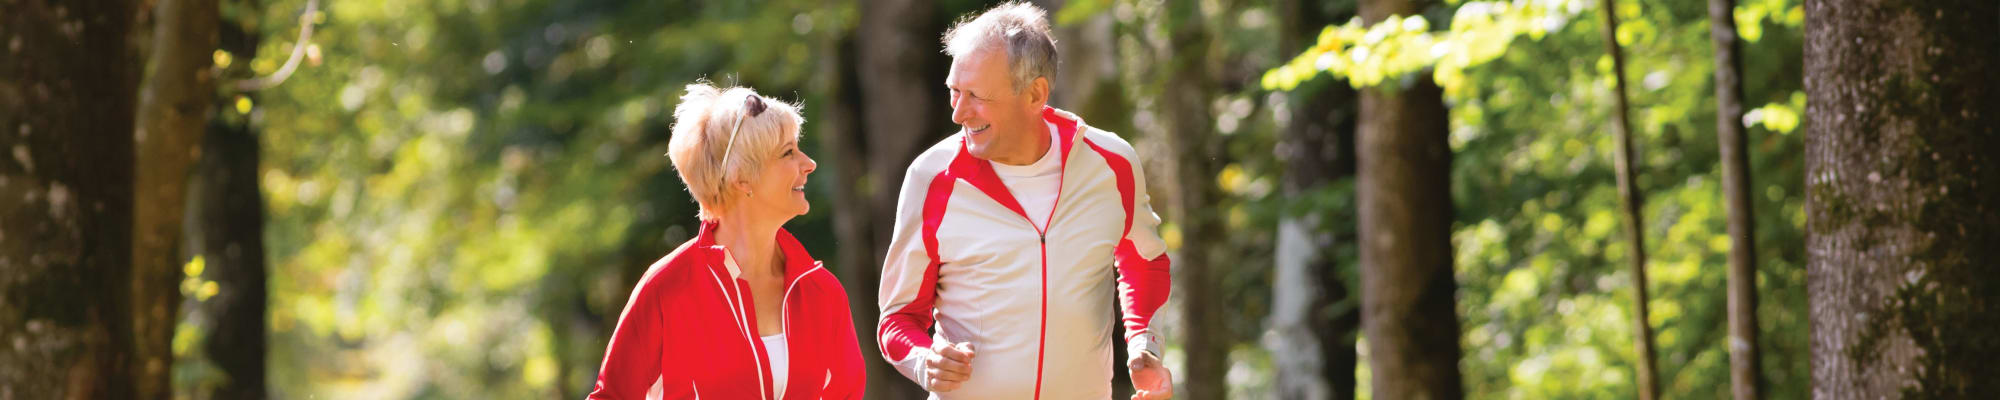 Senior couple running together at The Commons at Union Ranch in Manteca, California